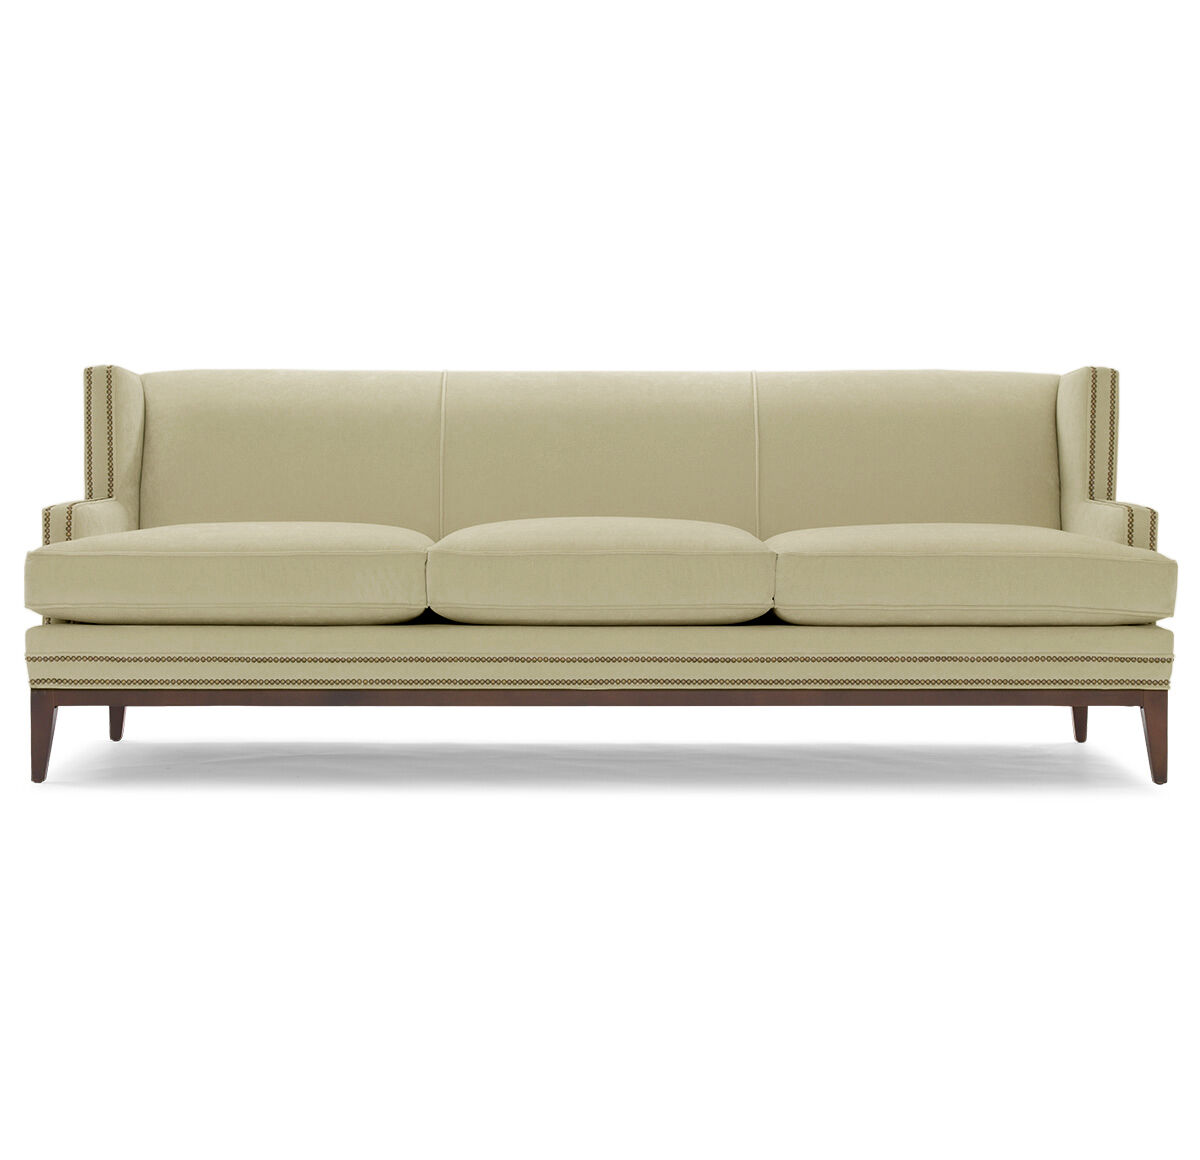 Sofa On Line Tips Fabulous Furniture On Online Ping With Black TheSofa